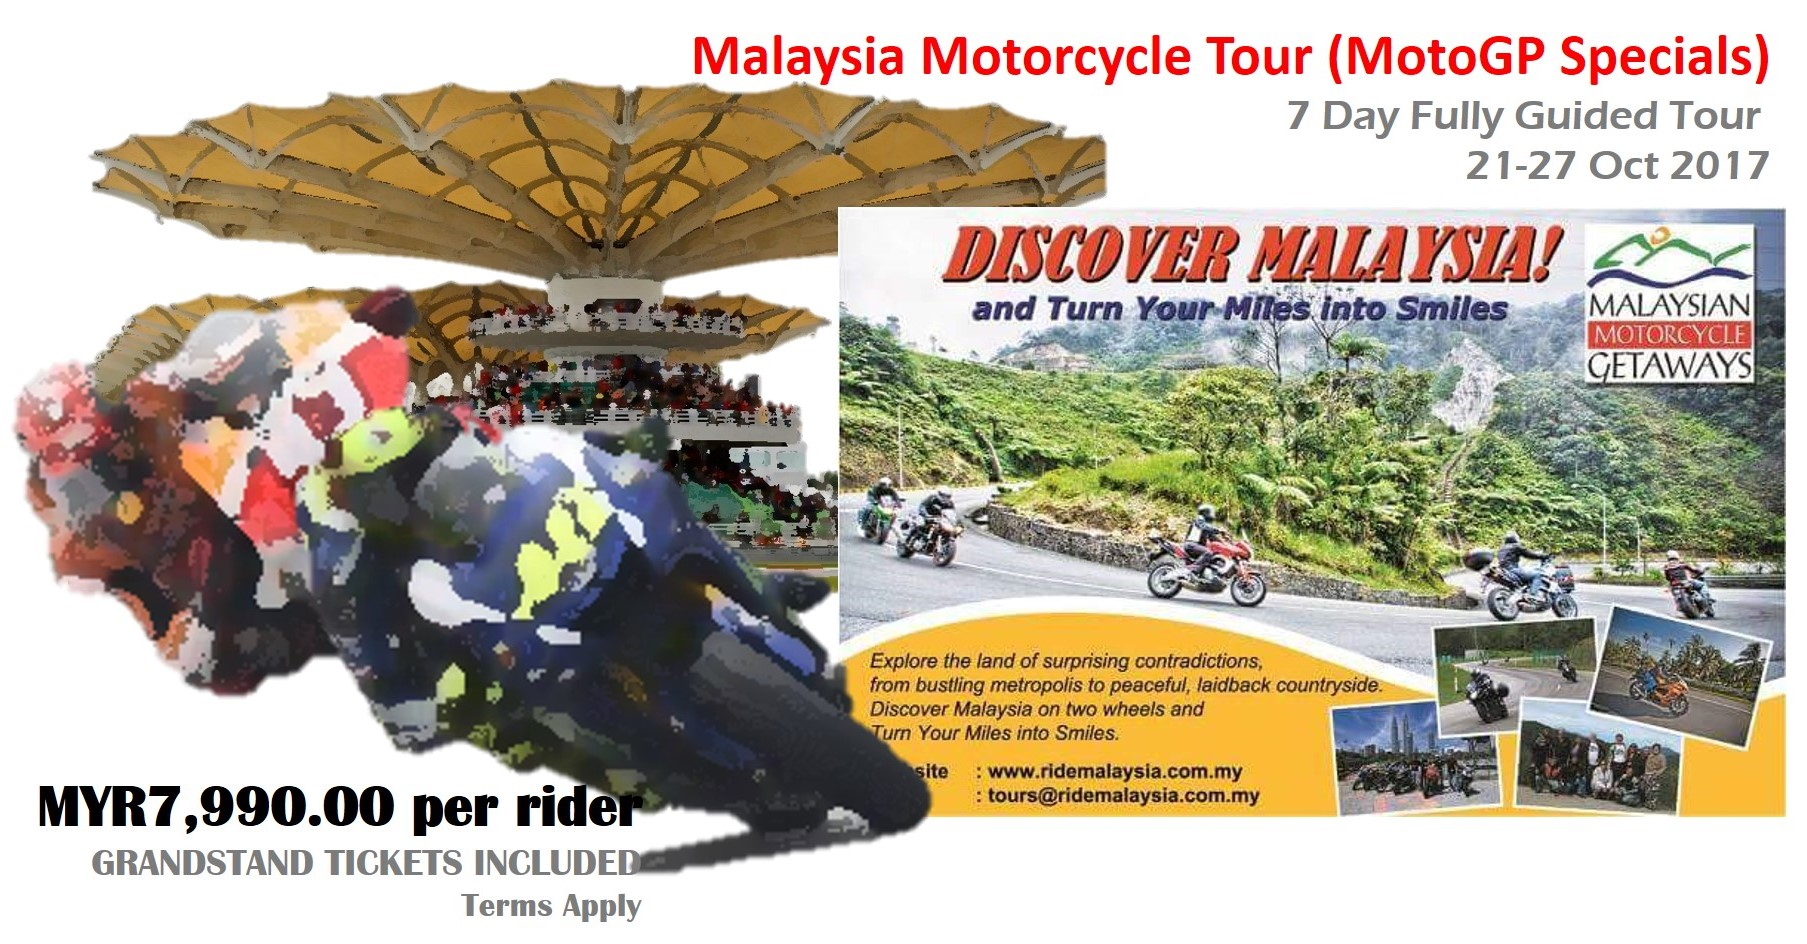 10% discount for 7-day tour MotoGP Specials